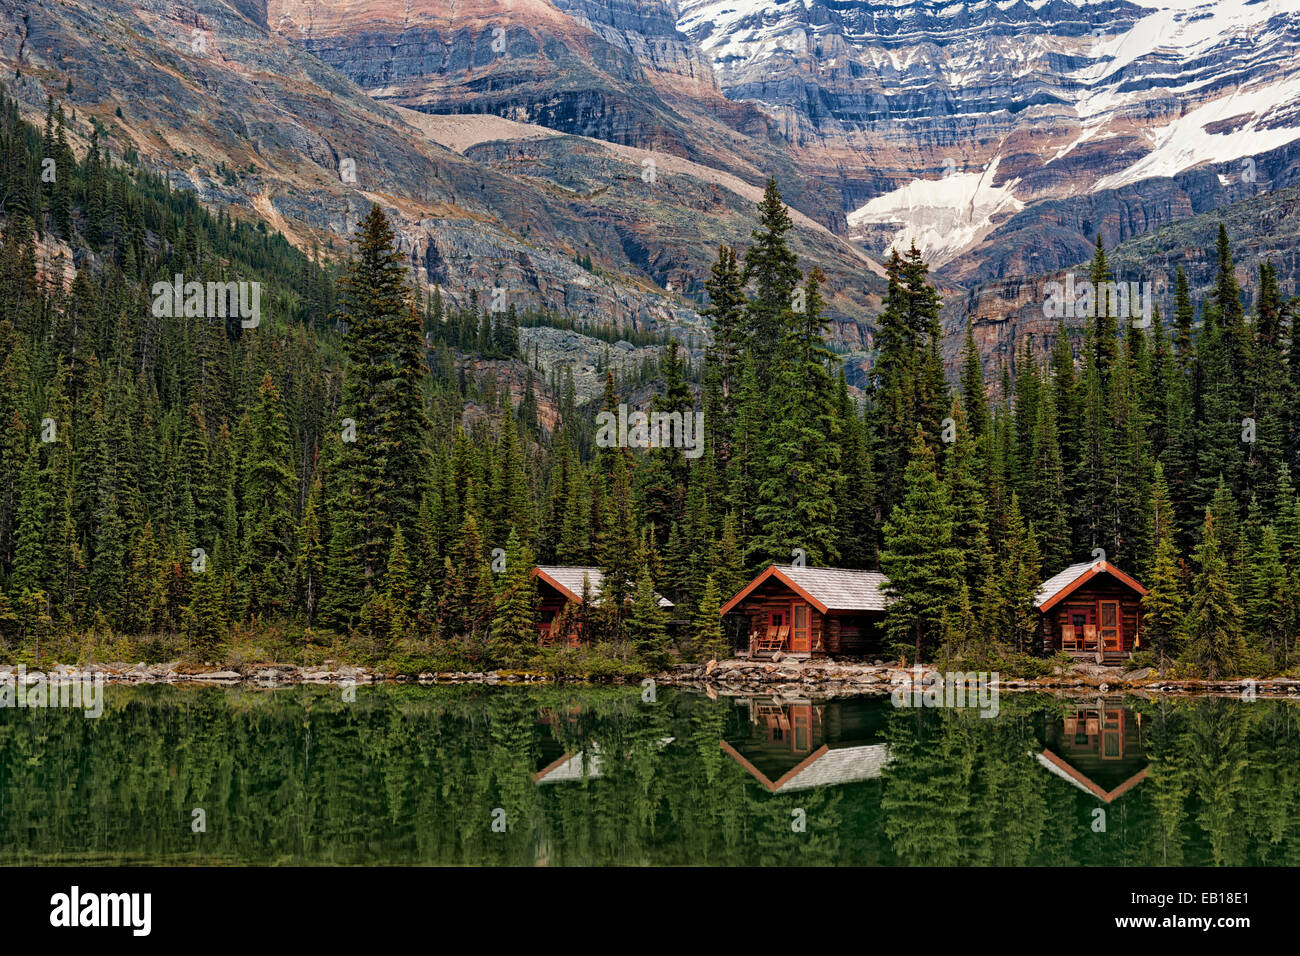 Cabins at Lake O'Hara in British Columbia's Canadian Rockies and Yoho National Park. - Stock Image